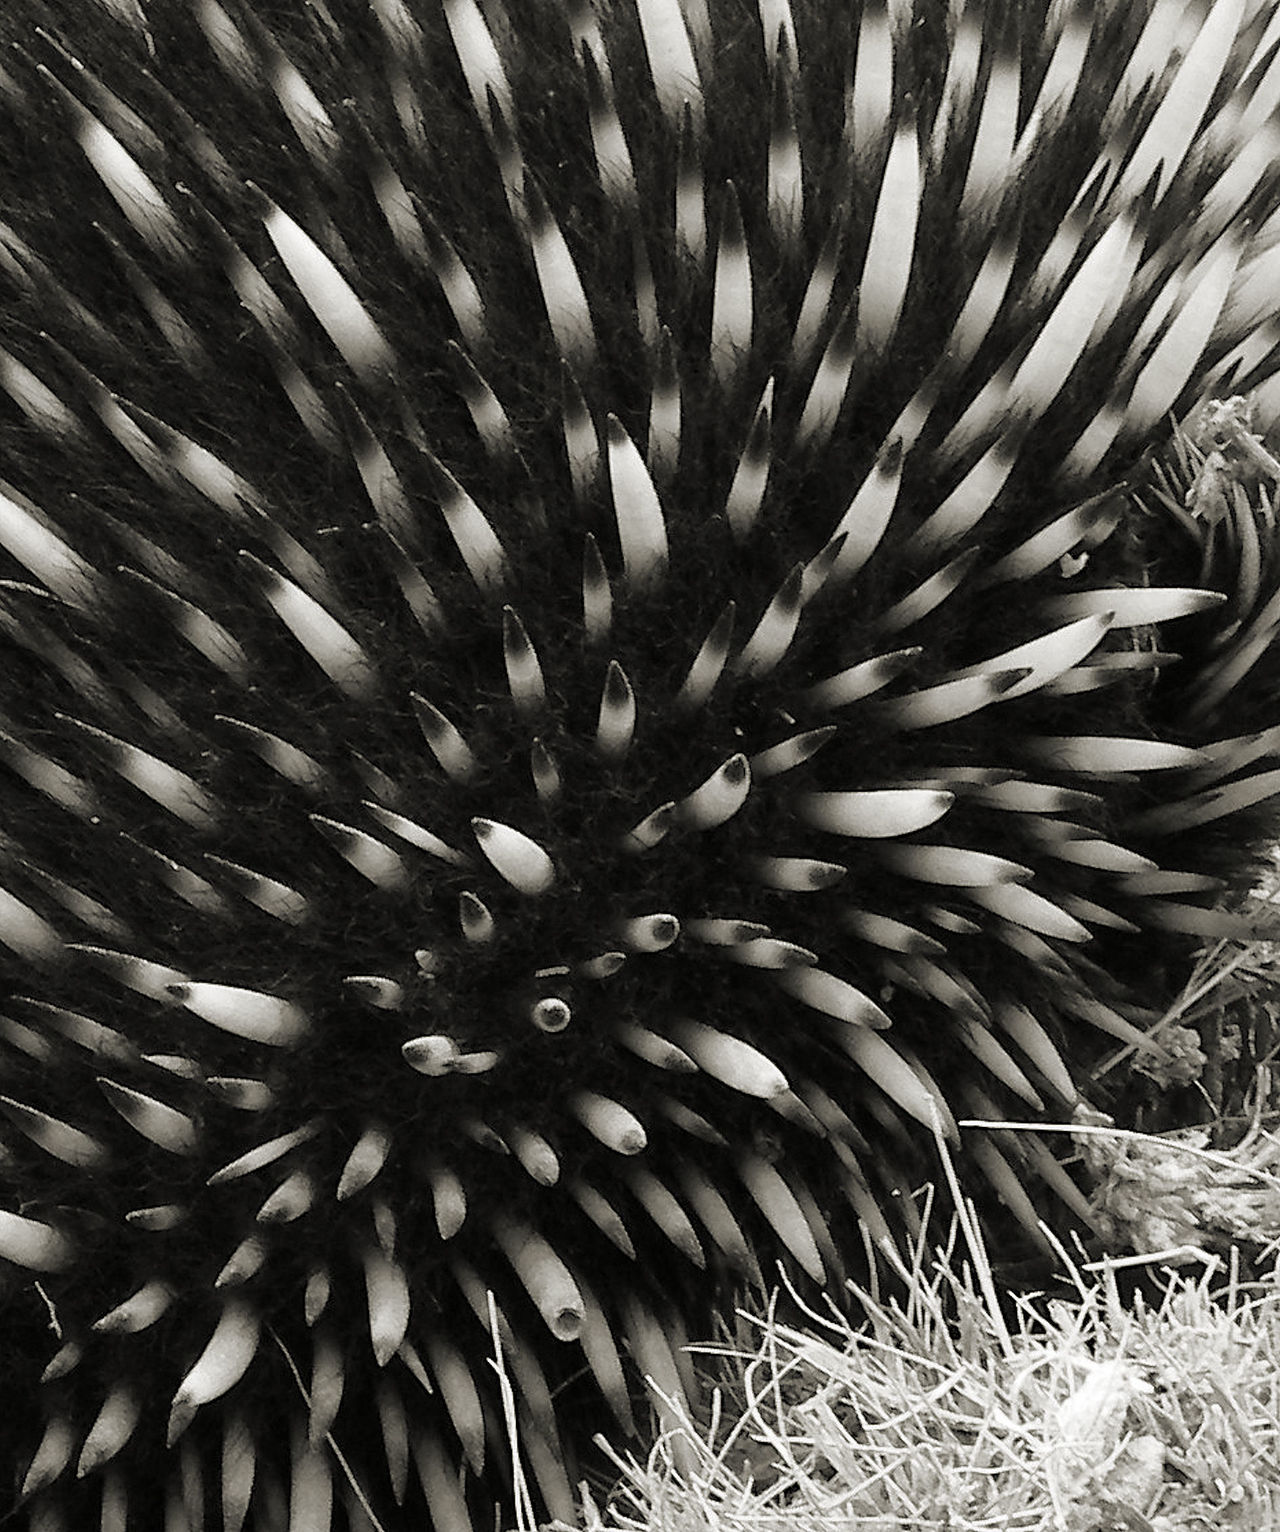 Belated Macro Monday :-O Backgrounds Black And White Blackandwhite Close-up Day Echidna Fanned Out Fragility Full Frame Macro Monday Macro Photography Nature Nature Through A Lens Nature Up Close No People Outdoors Pattern